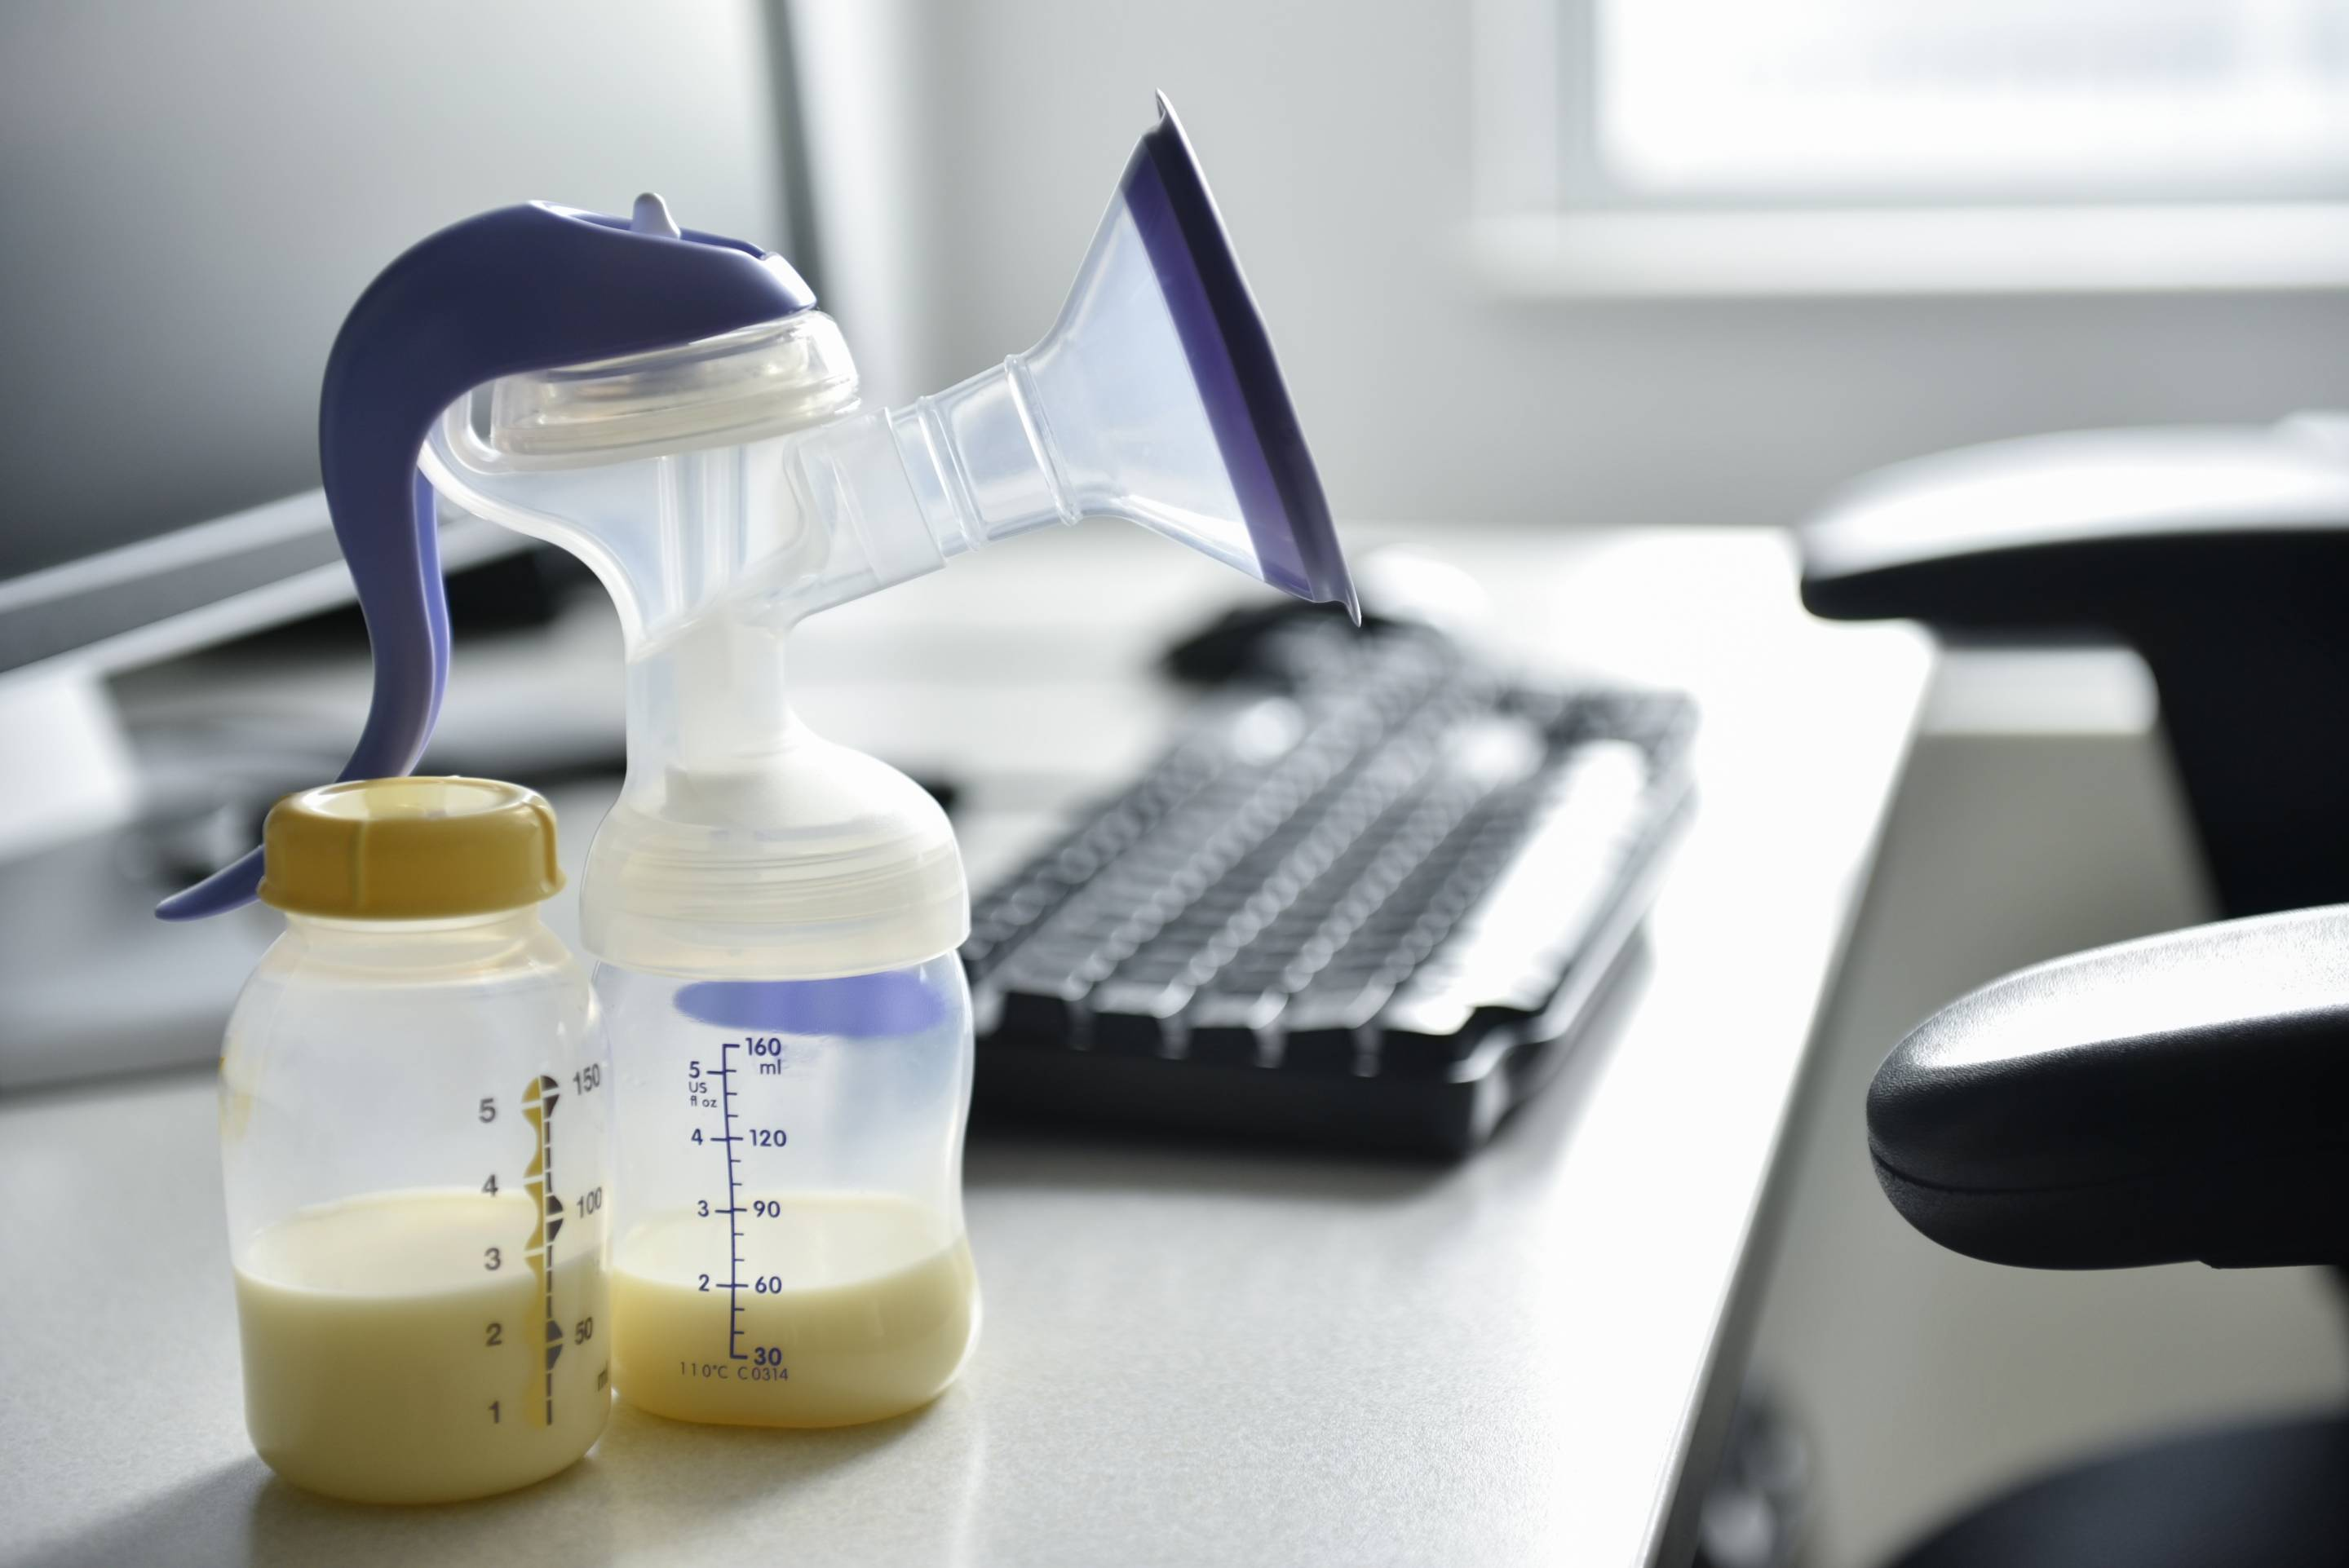 Breast pump and bottle of breast milk near computer